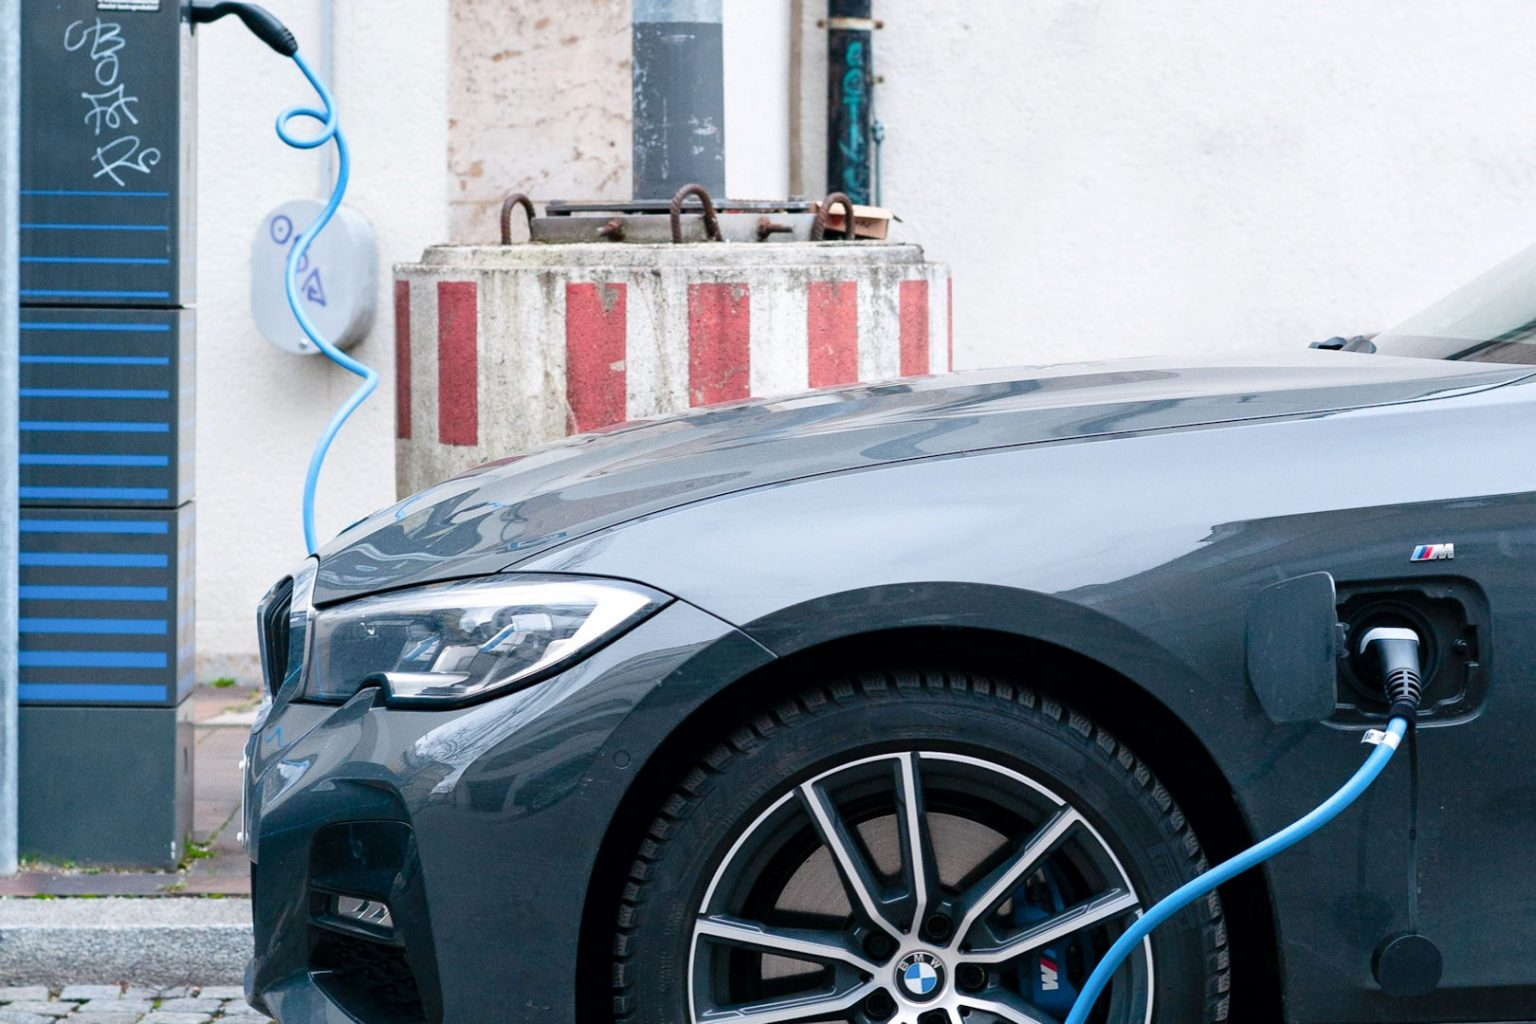 microngroup-BMW-charging-electric-vehicle-charger